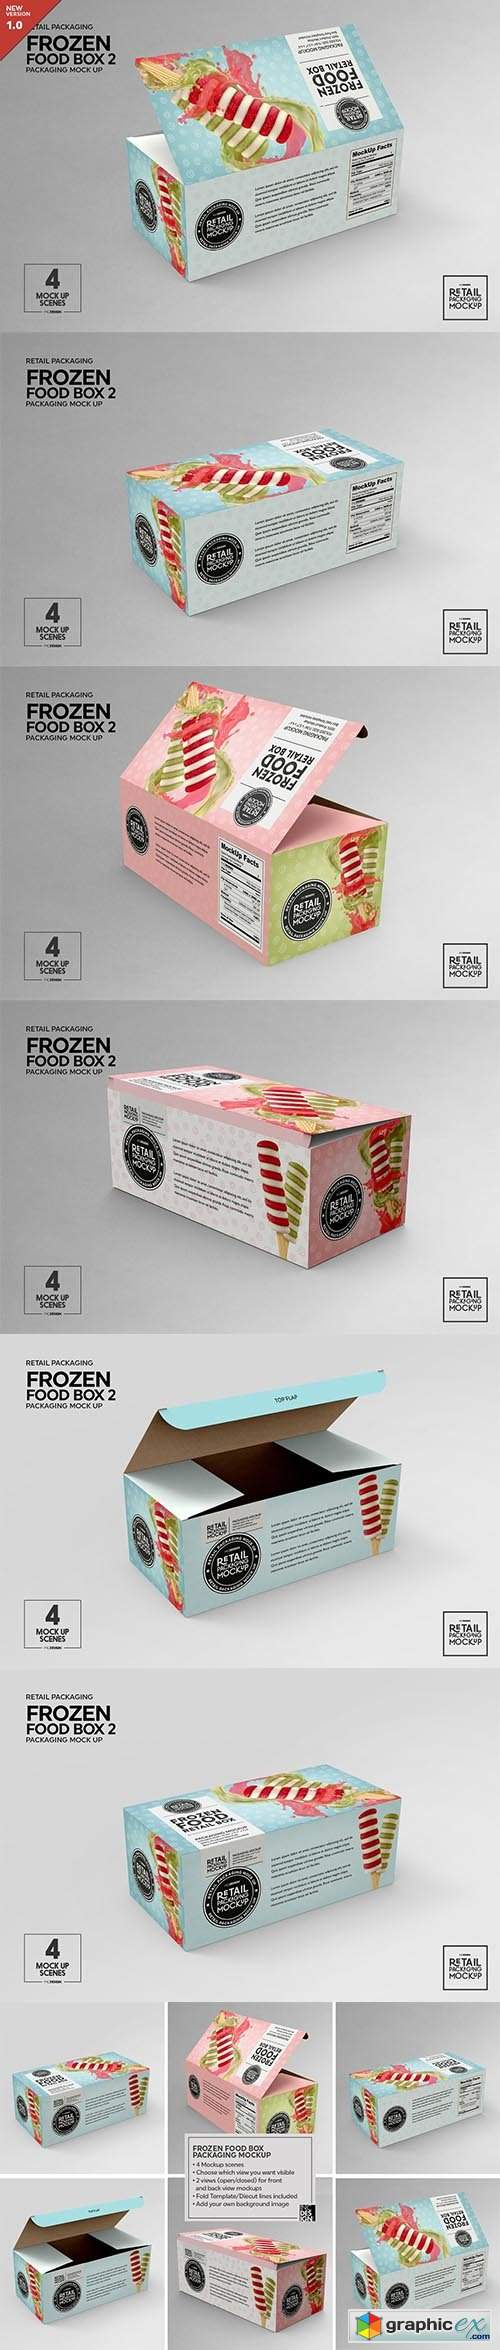 Retail Frozen Food Packaging2 Mockup